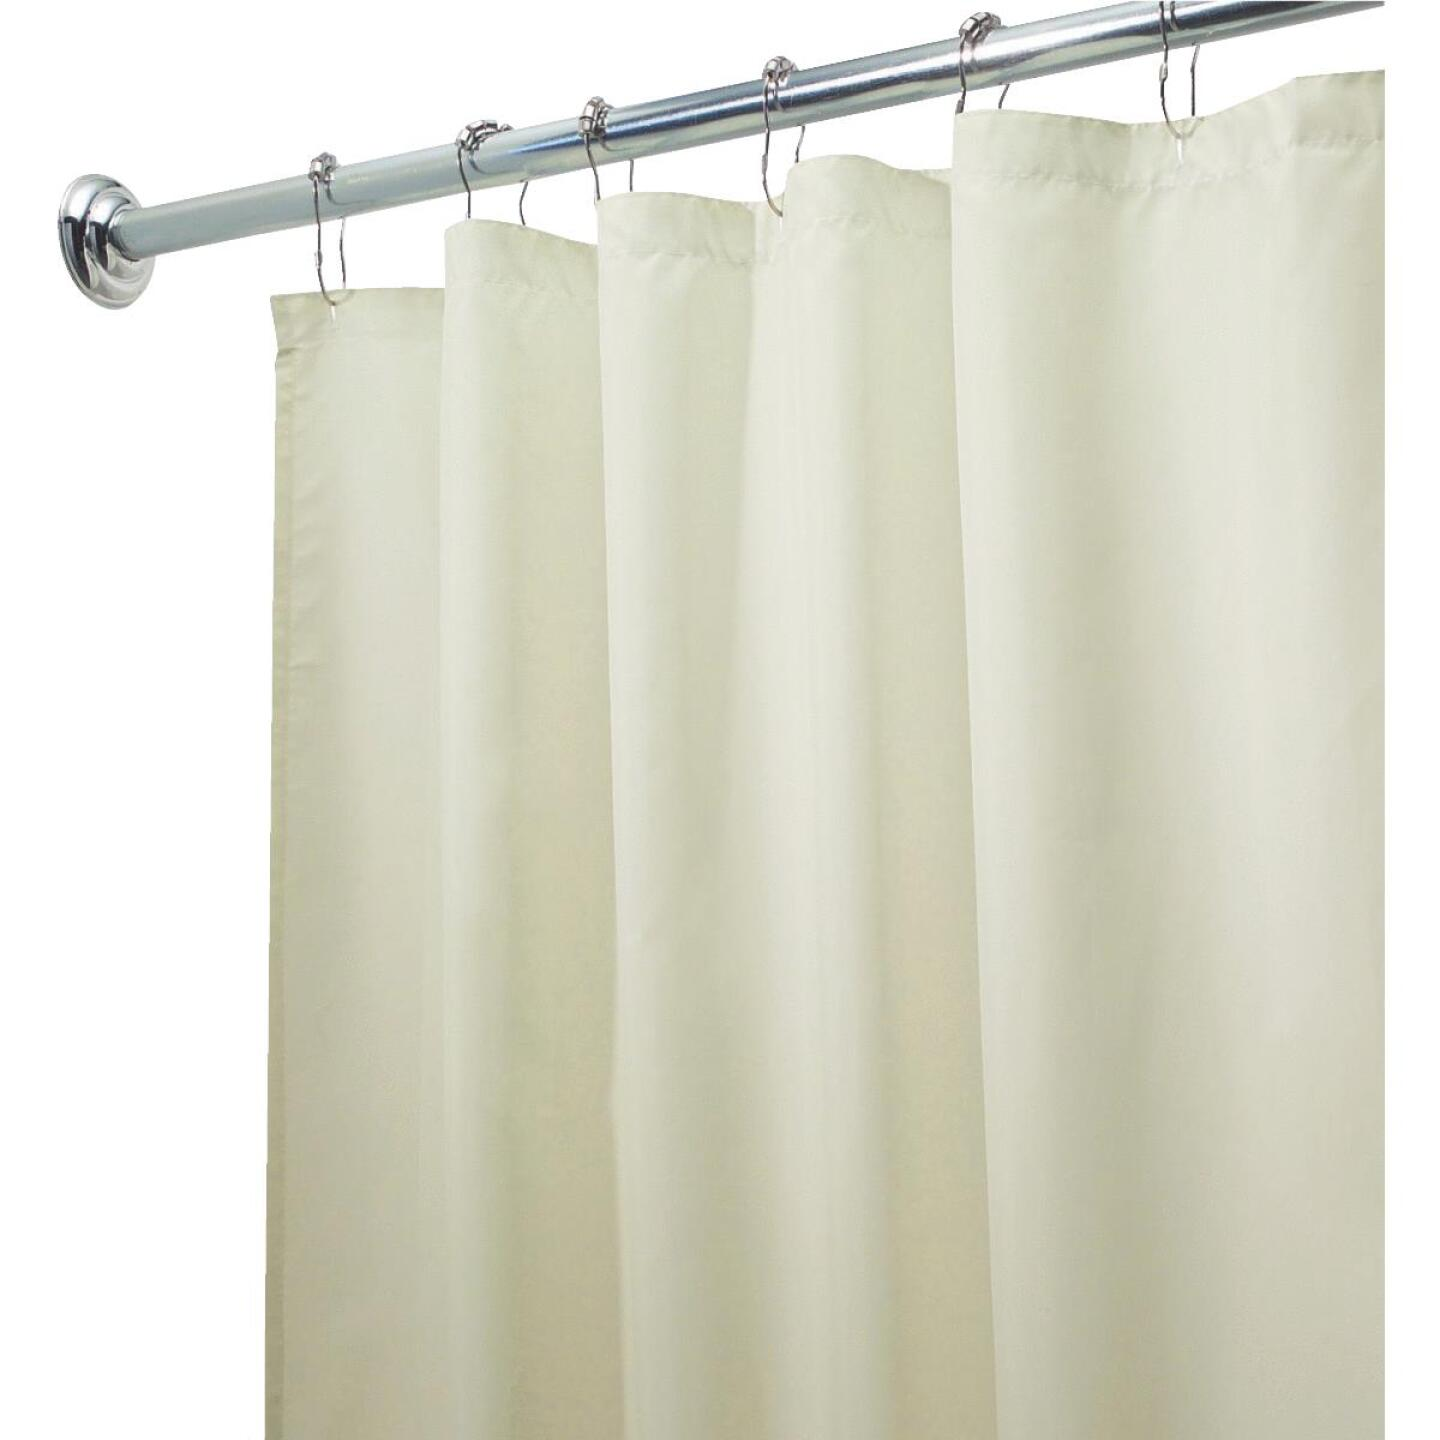 InterDesign 72 In. x 72 In. Sand Polyester Shower Curtain Liner Image 2